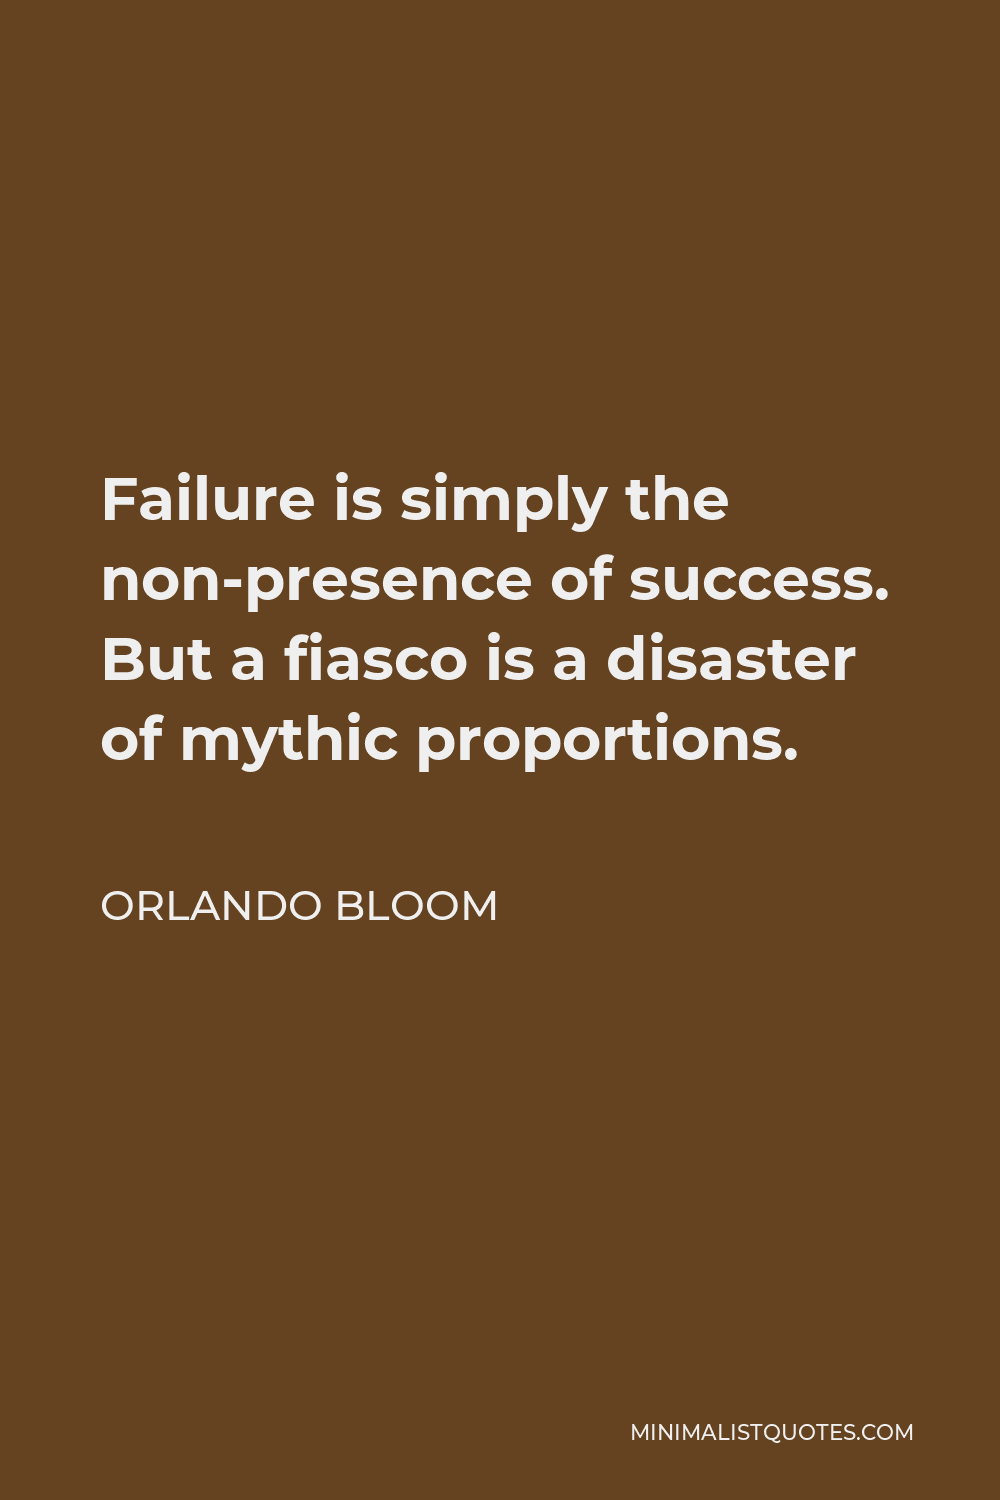 Orlando Bloom Quote - Failure is simply the non-presence of success. But a fiasco is a disaster of mythic proportions.